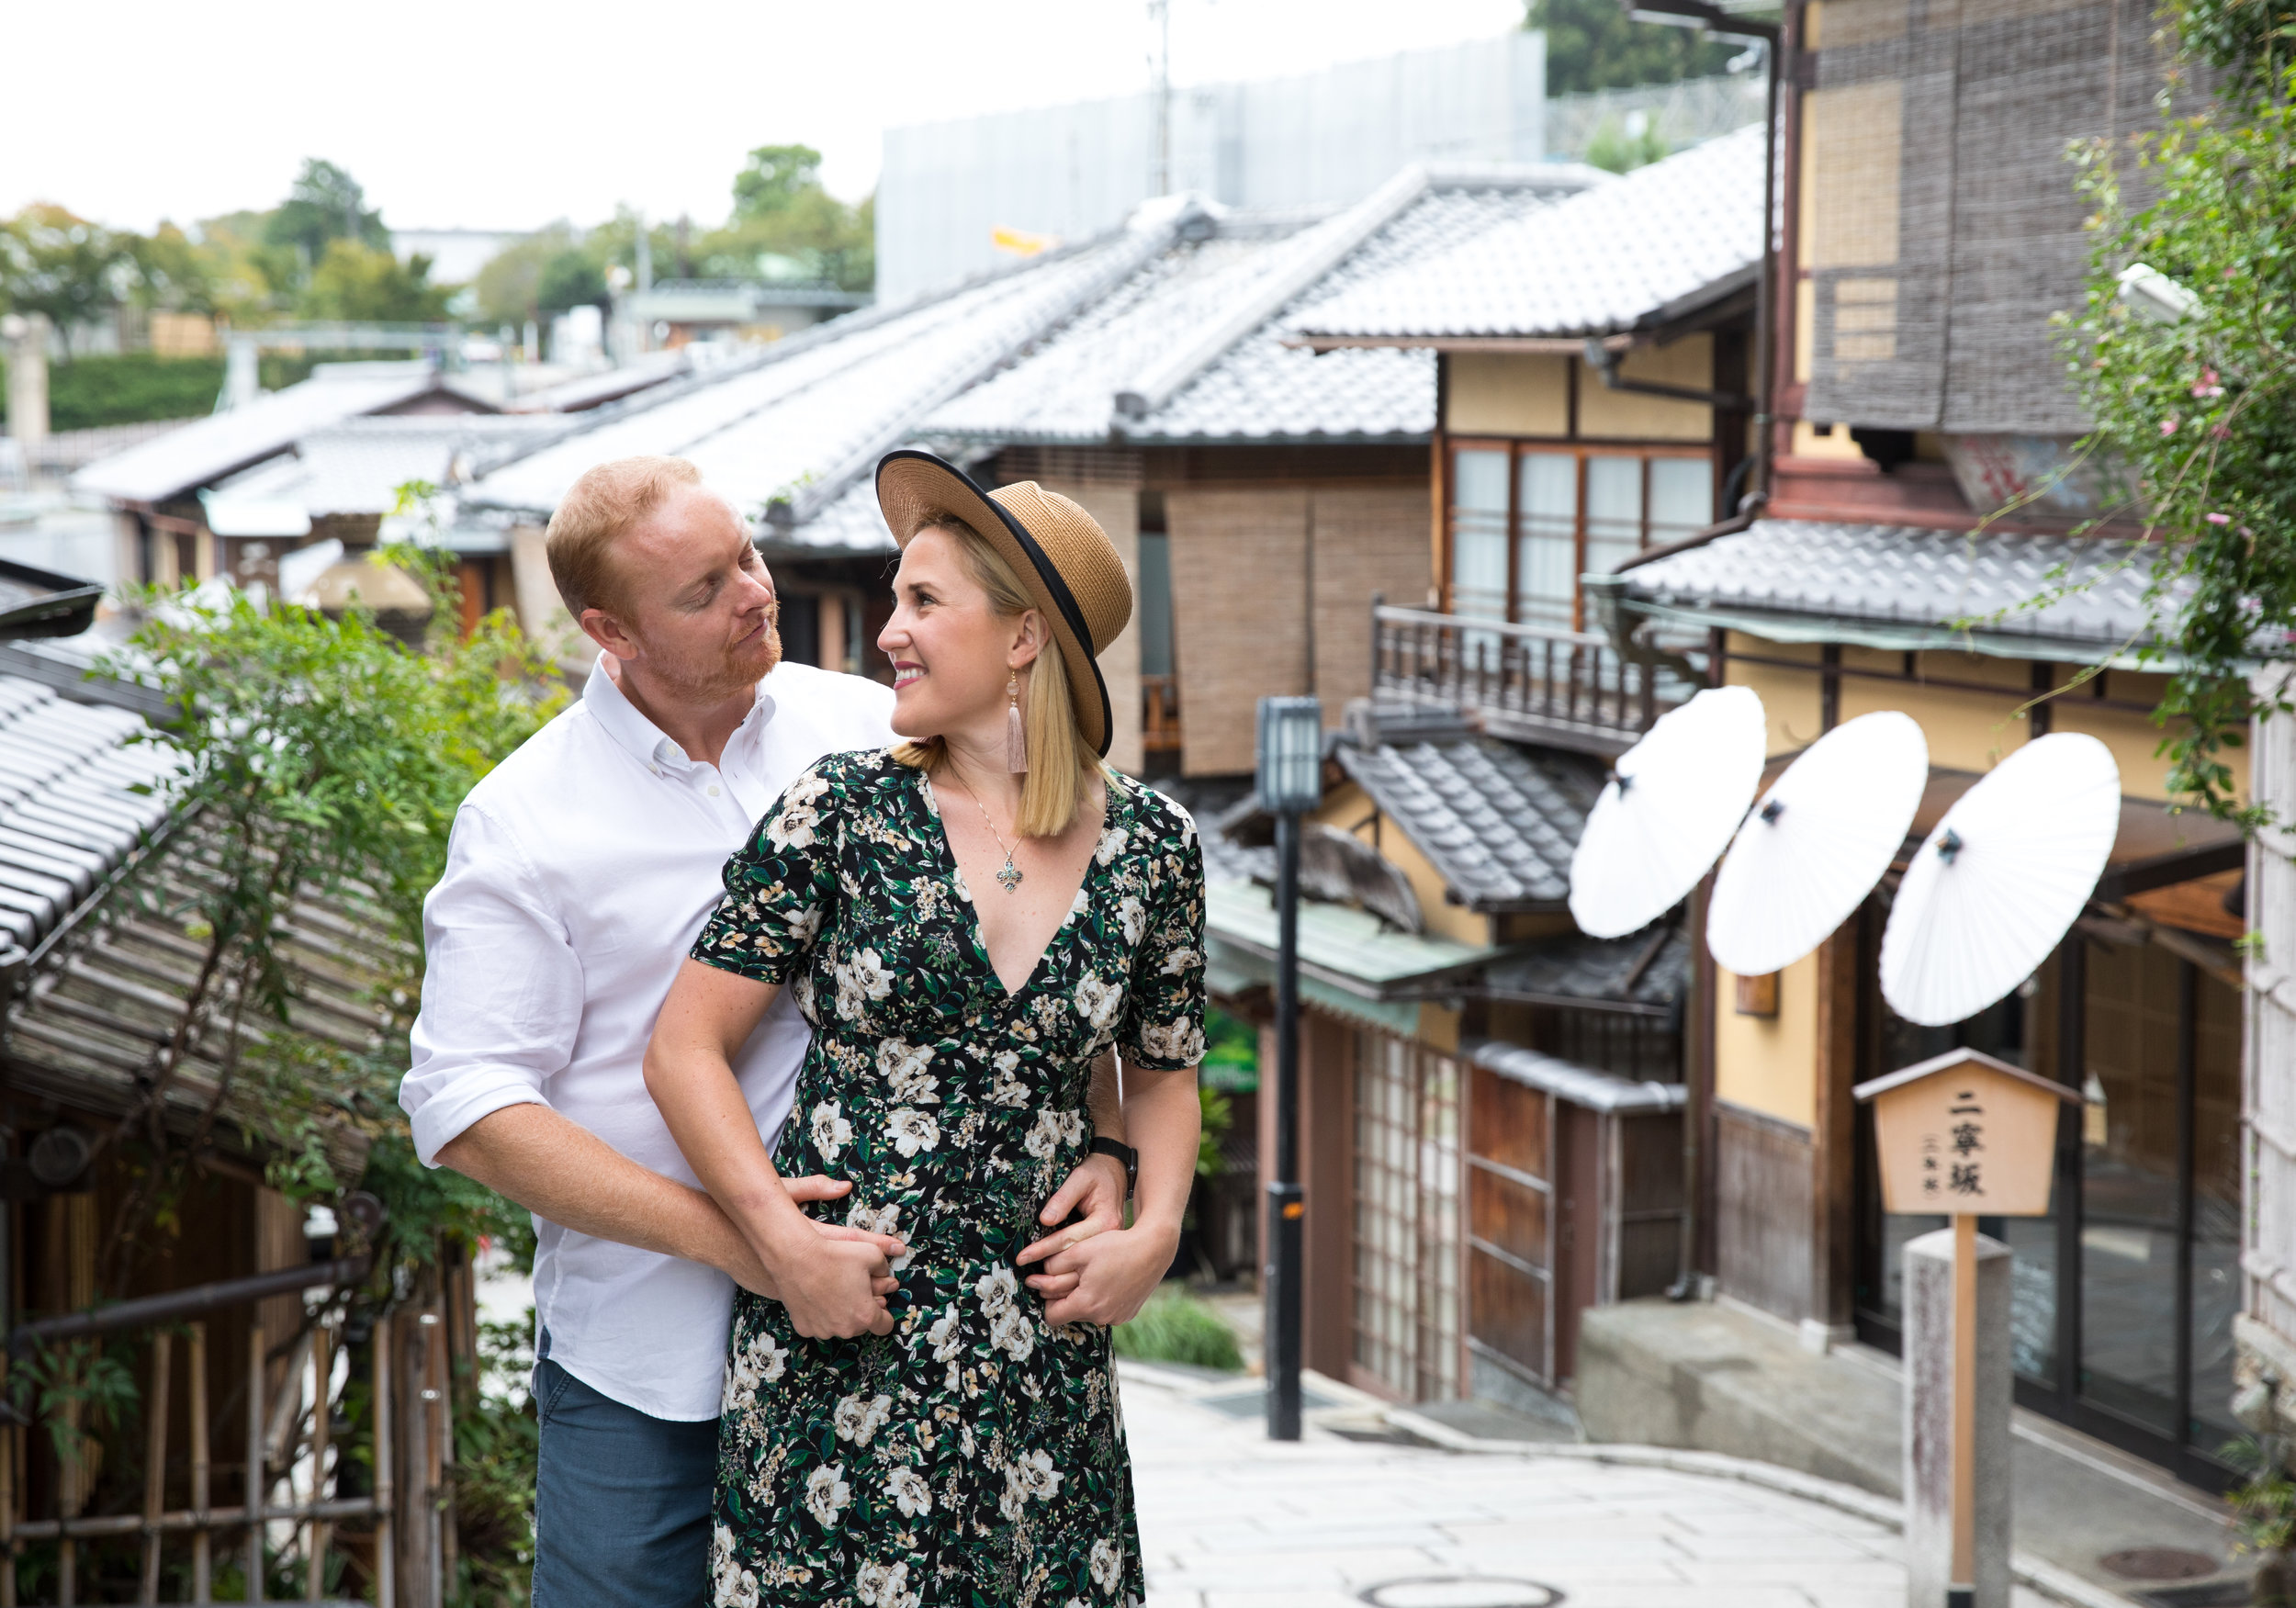 Sprazzi_Professional_Photography_Photographer_Kyoto_Japan_Dario_Original_20.jpg